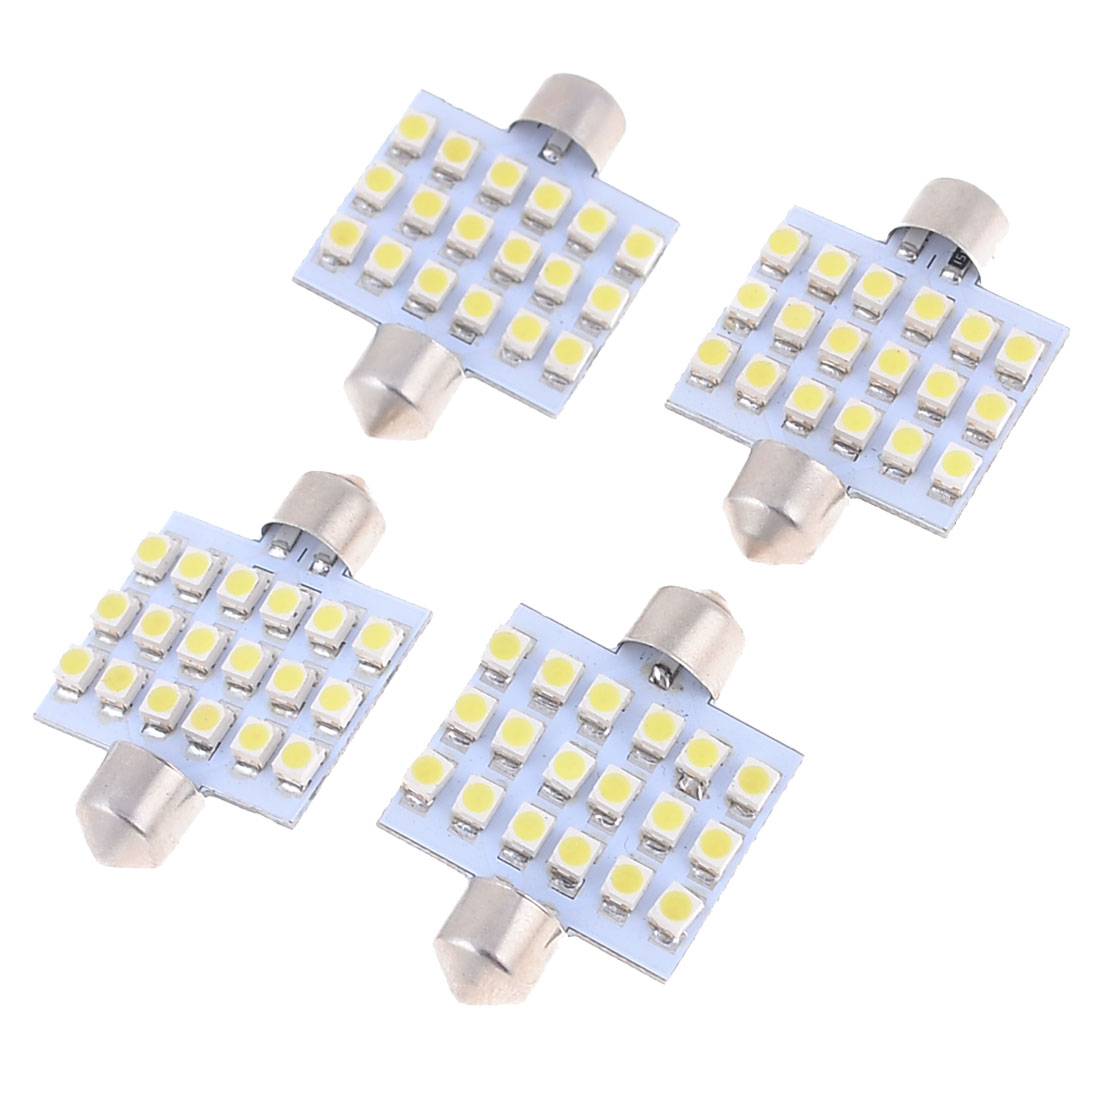 "4 Pcs 39mm 1.54"" 3528 SMD 18-LED White Festoon Dome Light Bulb DE3425 DE3423"